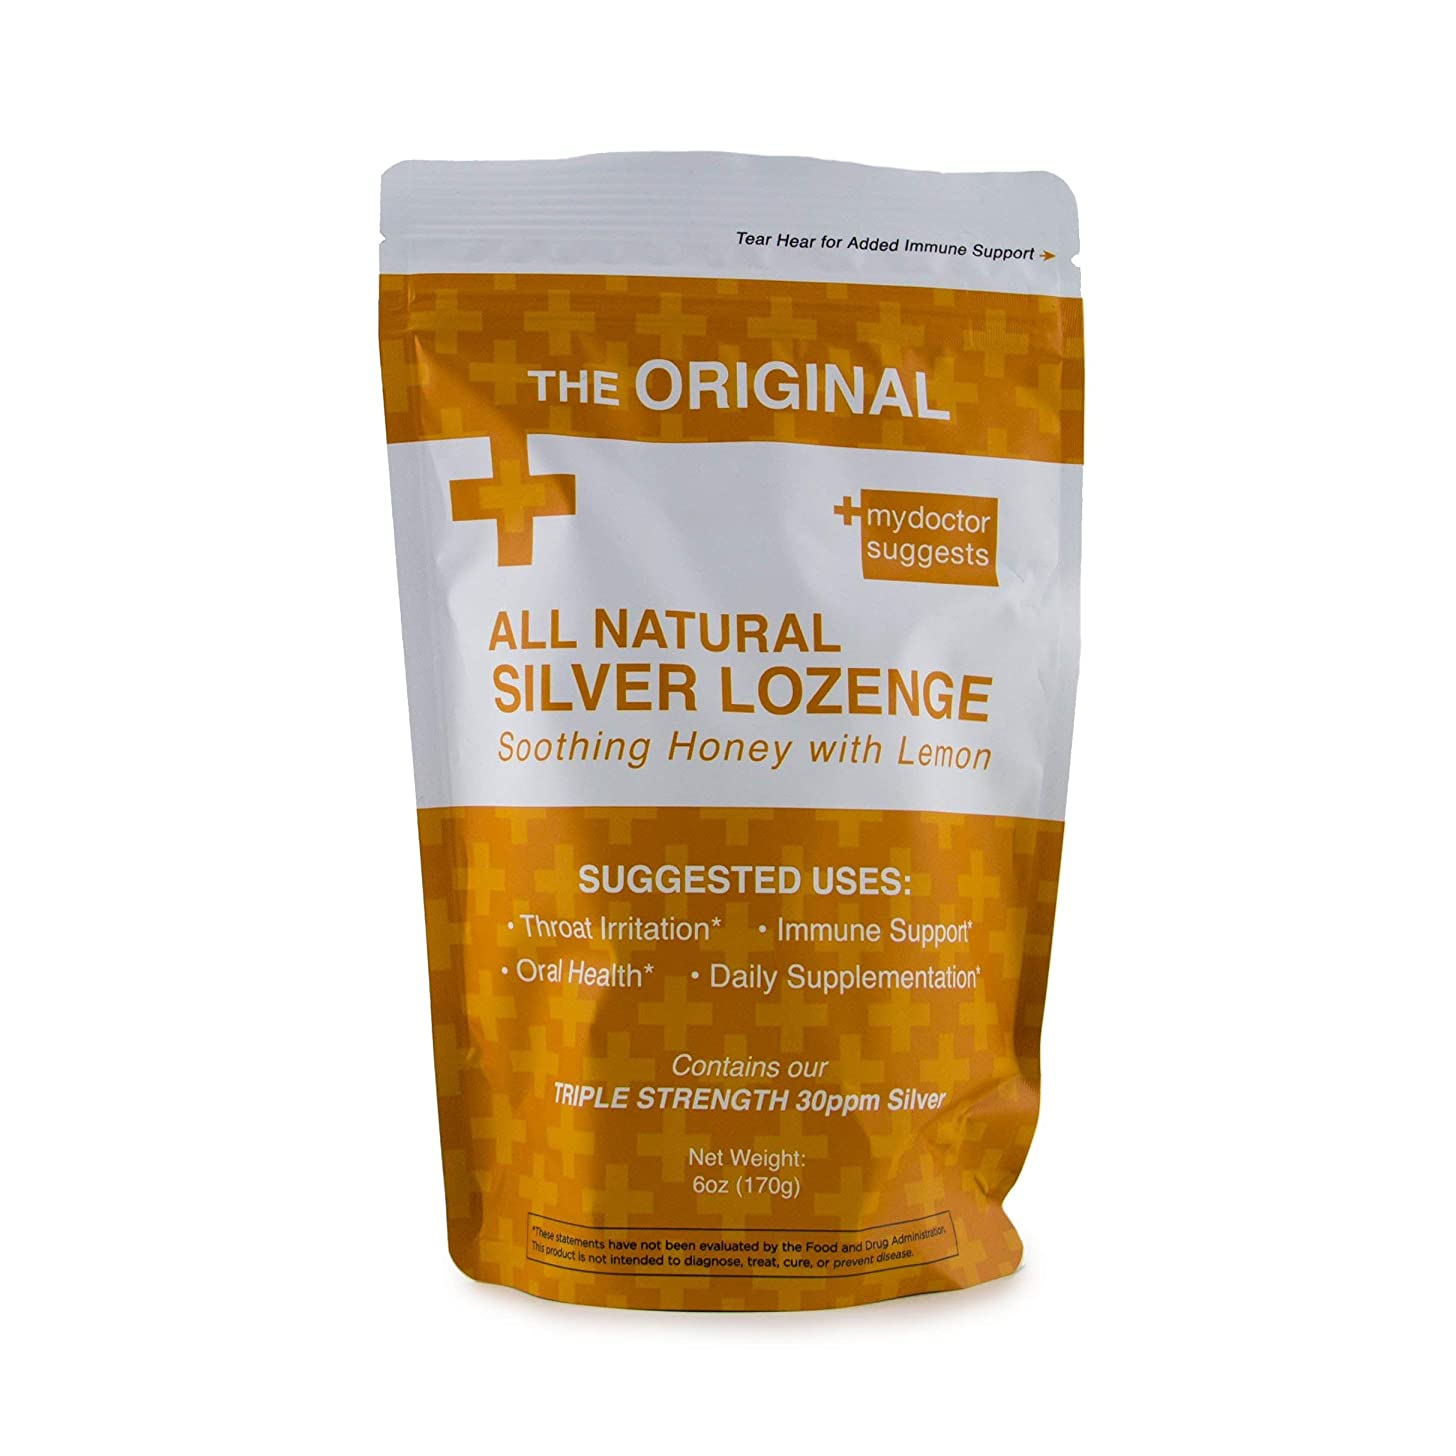 Natural Silver Lozenges - Soothing Honey with Lemon: The Perfect Cough Drop for Cough, Throat & Mouth Health - 30ppm Silver Solution in Each Drop